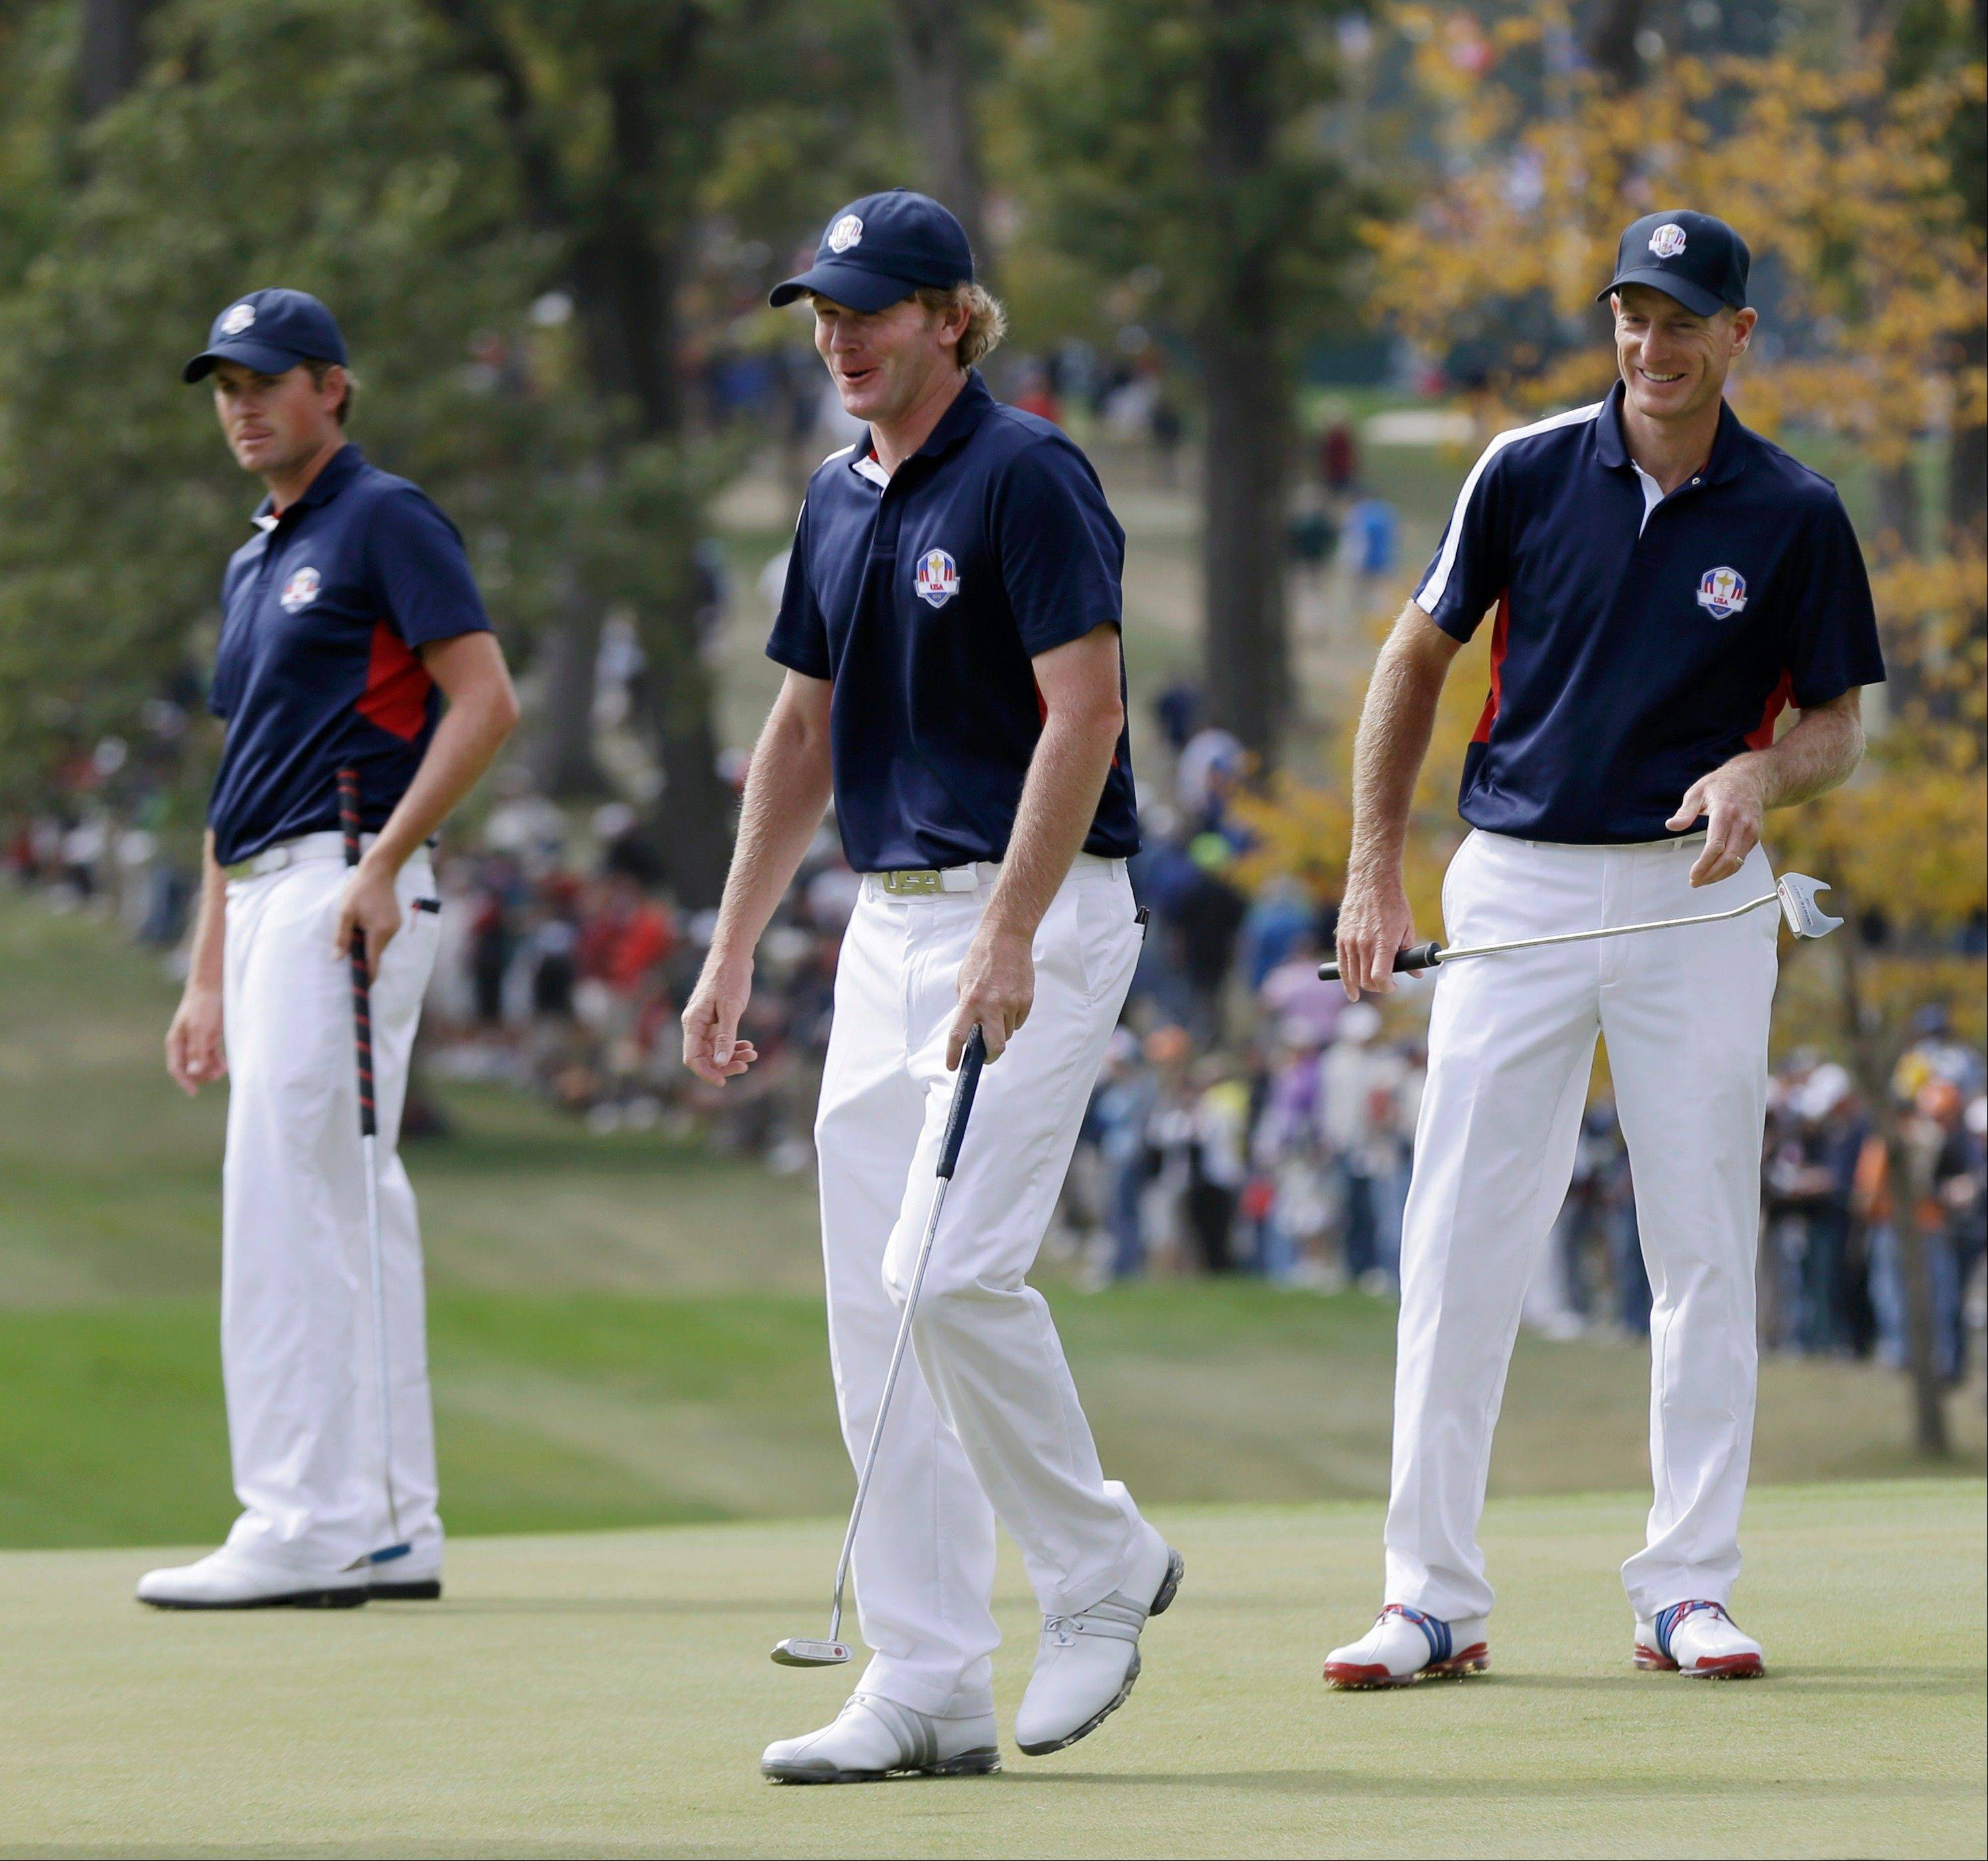 Team USA's Webb Simpson, left, Brandt Snedeker and Jim Furyk look over the green on the fourth hole during a practice round Thursday at Medinah. Simpson and Snedeker are Ryder Cup rookies, while Furyk knows all about Ryder Cup pressure.